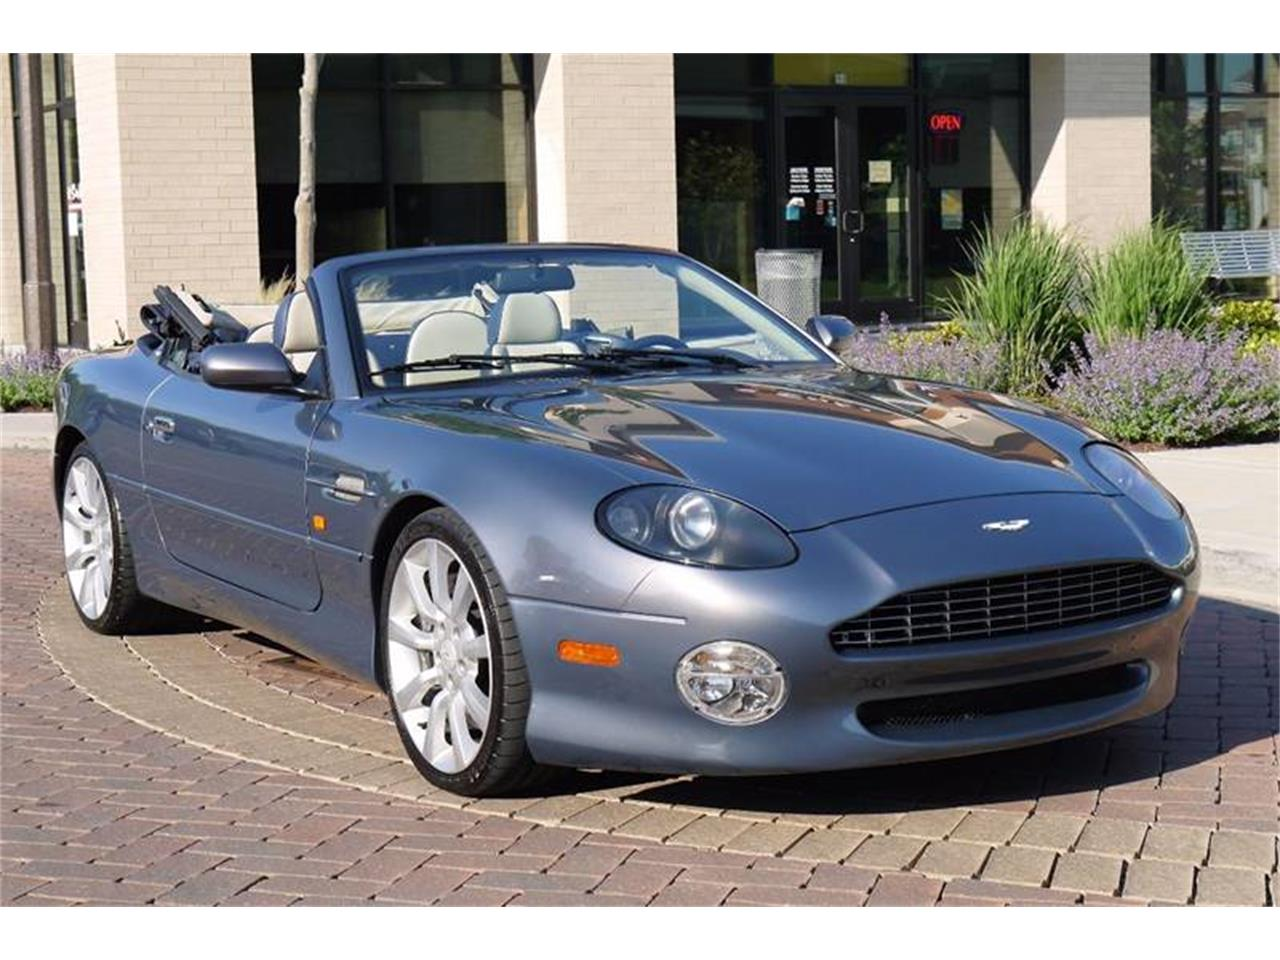 Large Picture of '03 Aston Martin DB7 Auction Vehicle Offered by Arde Motorcars - L79D